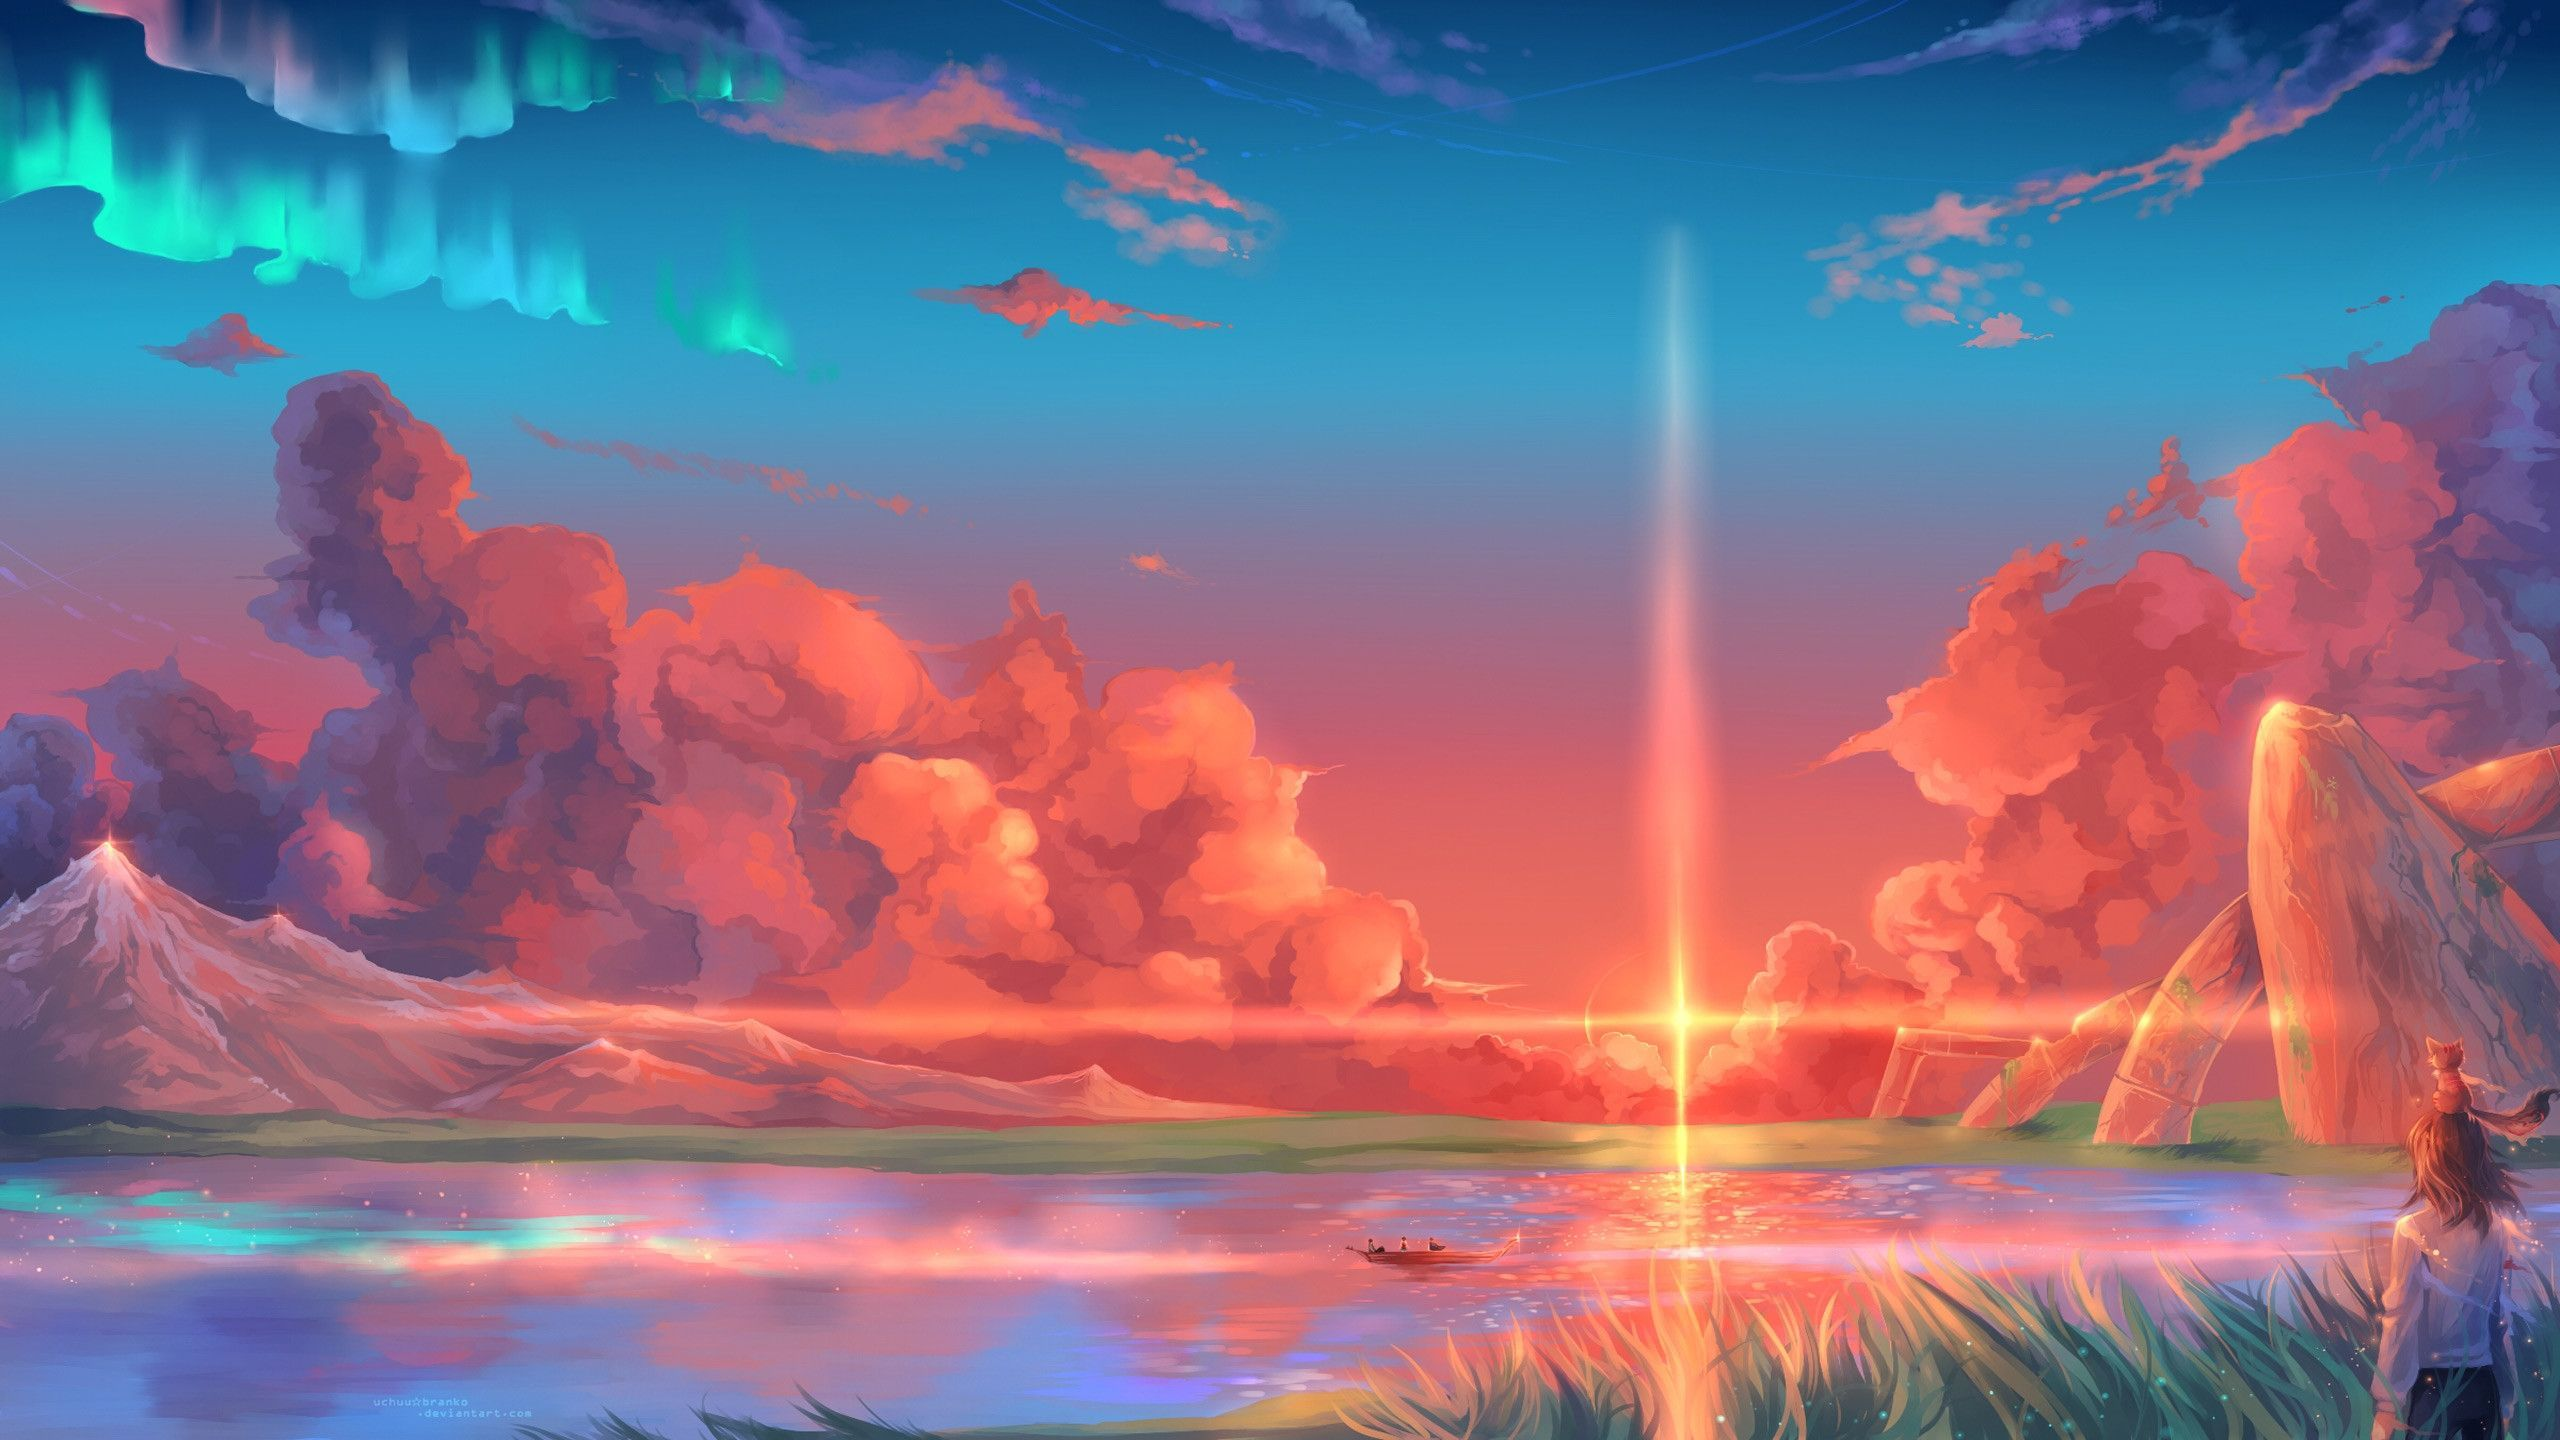 2560x1440 Aesthetic Wallpapers Top Free 2560x1440 Aesthetic Backgrounds Wallpaperaccess